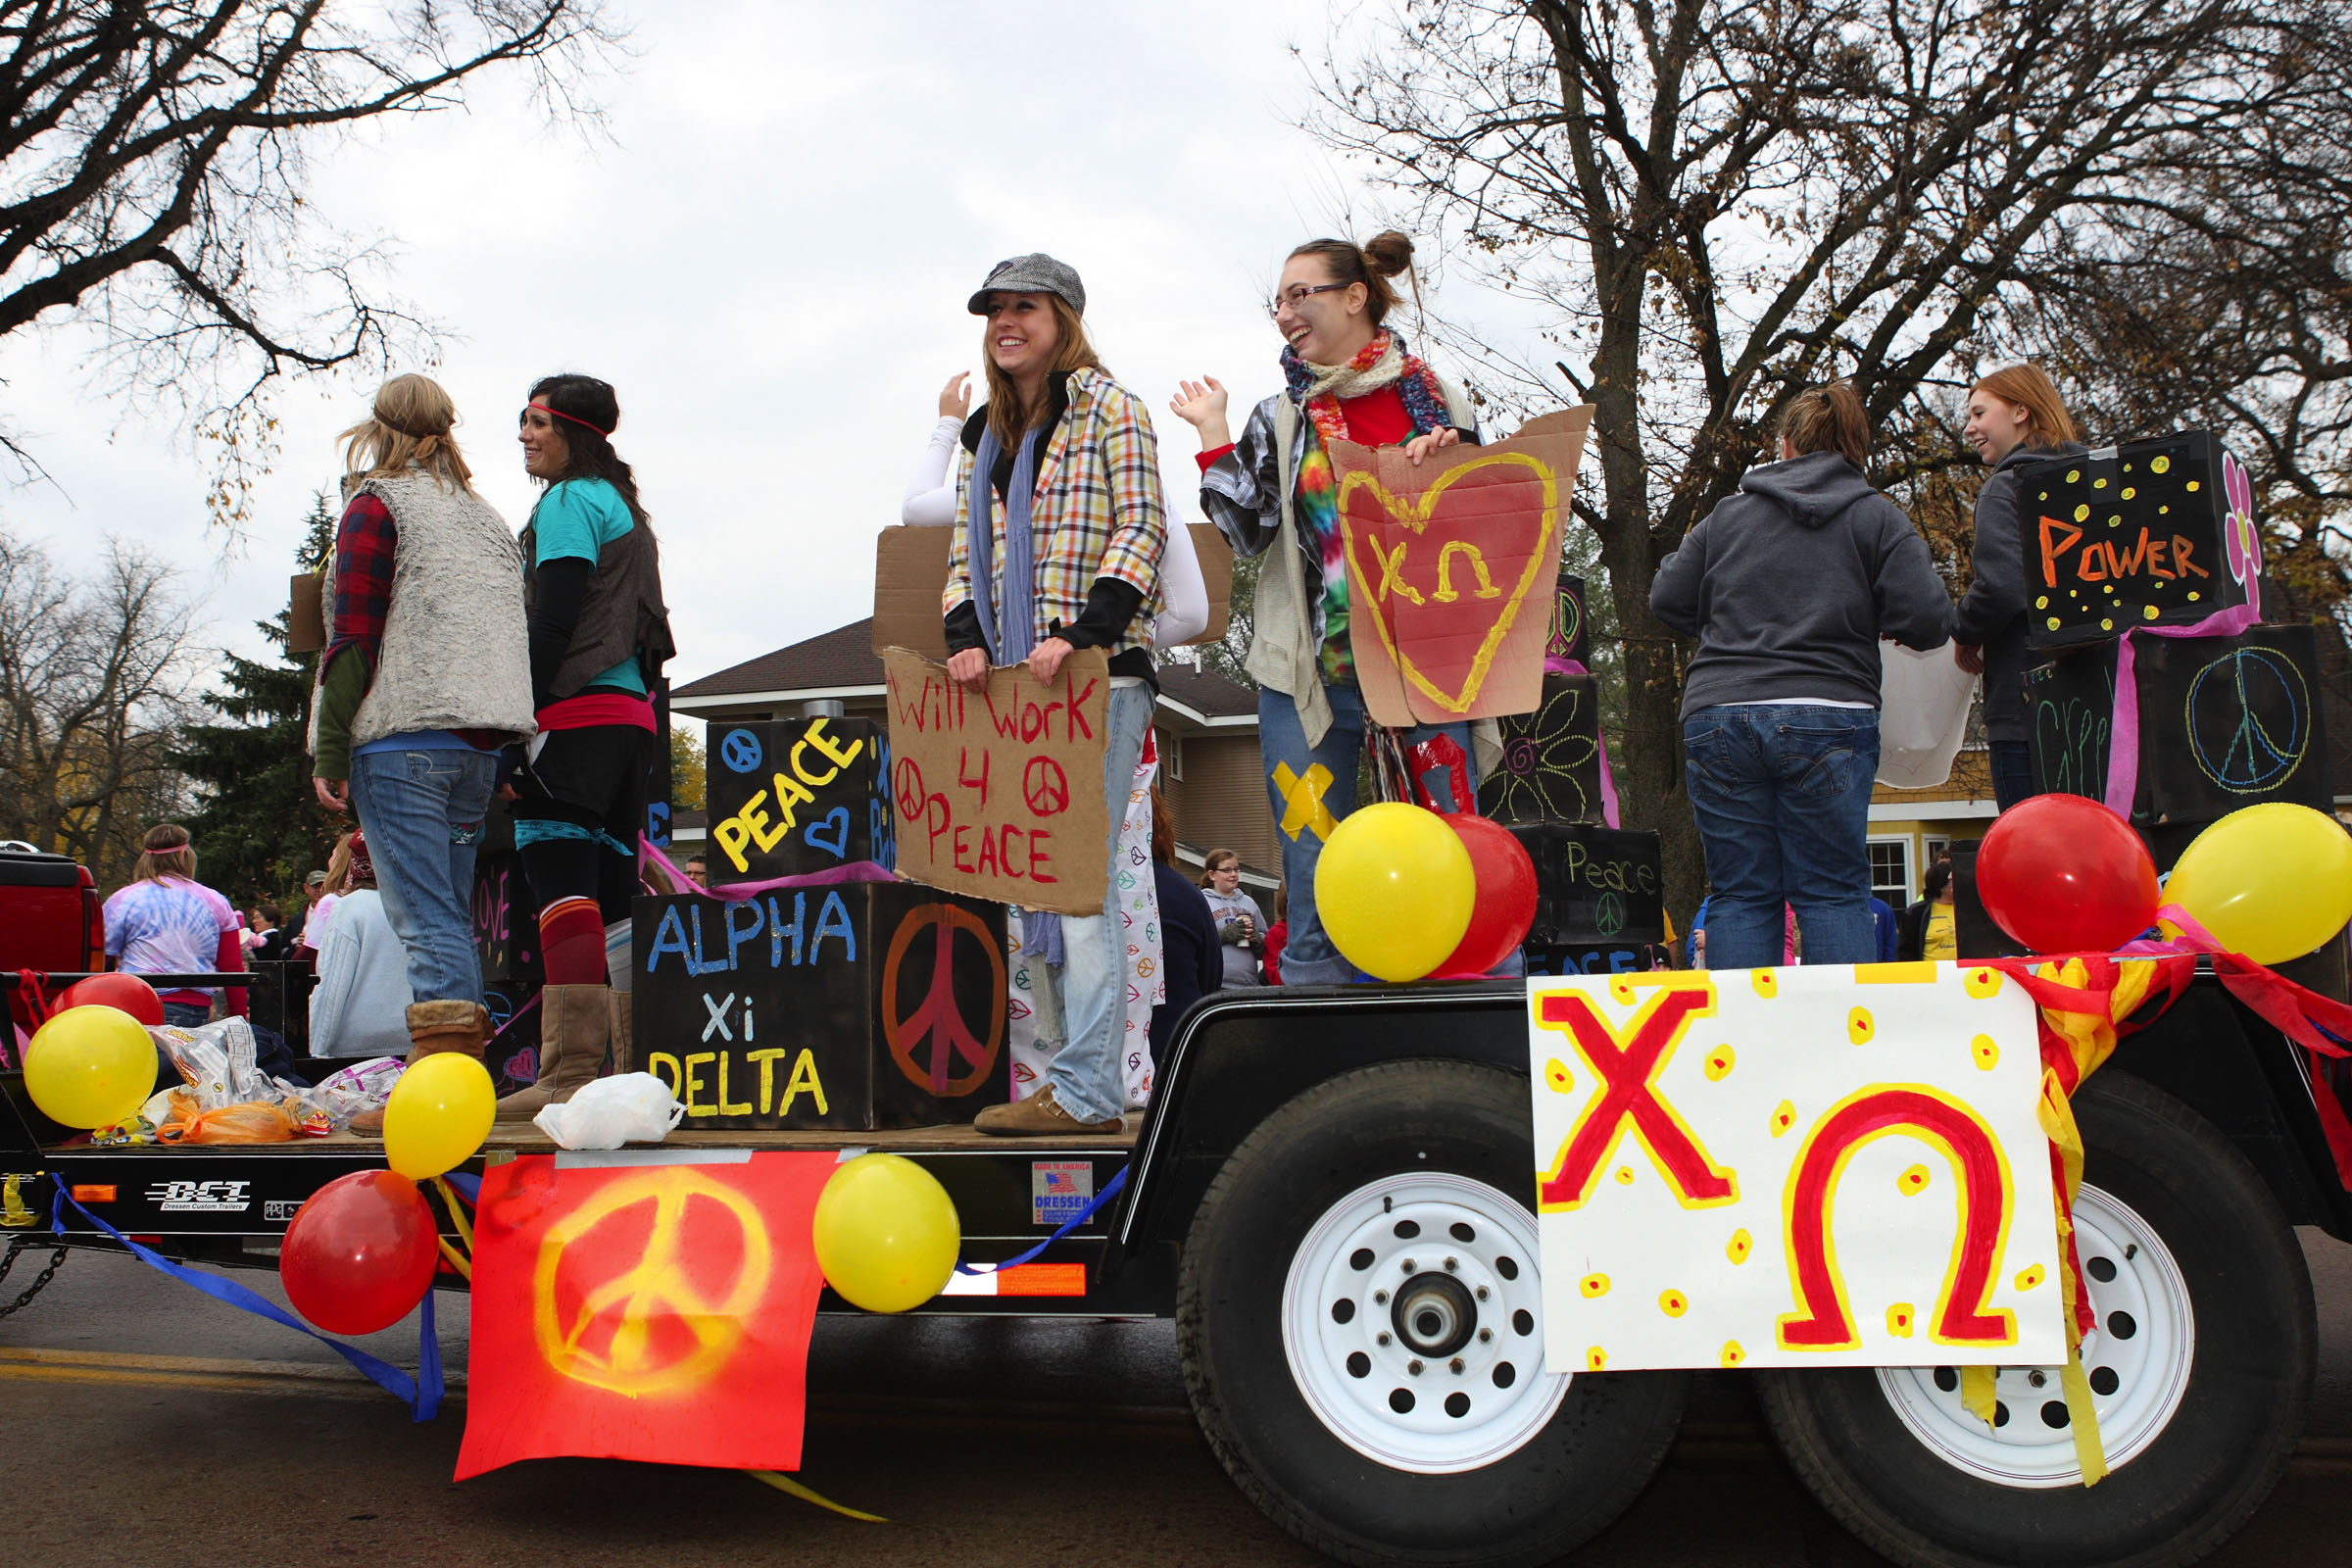 Alpha Xi Delta Float